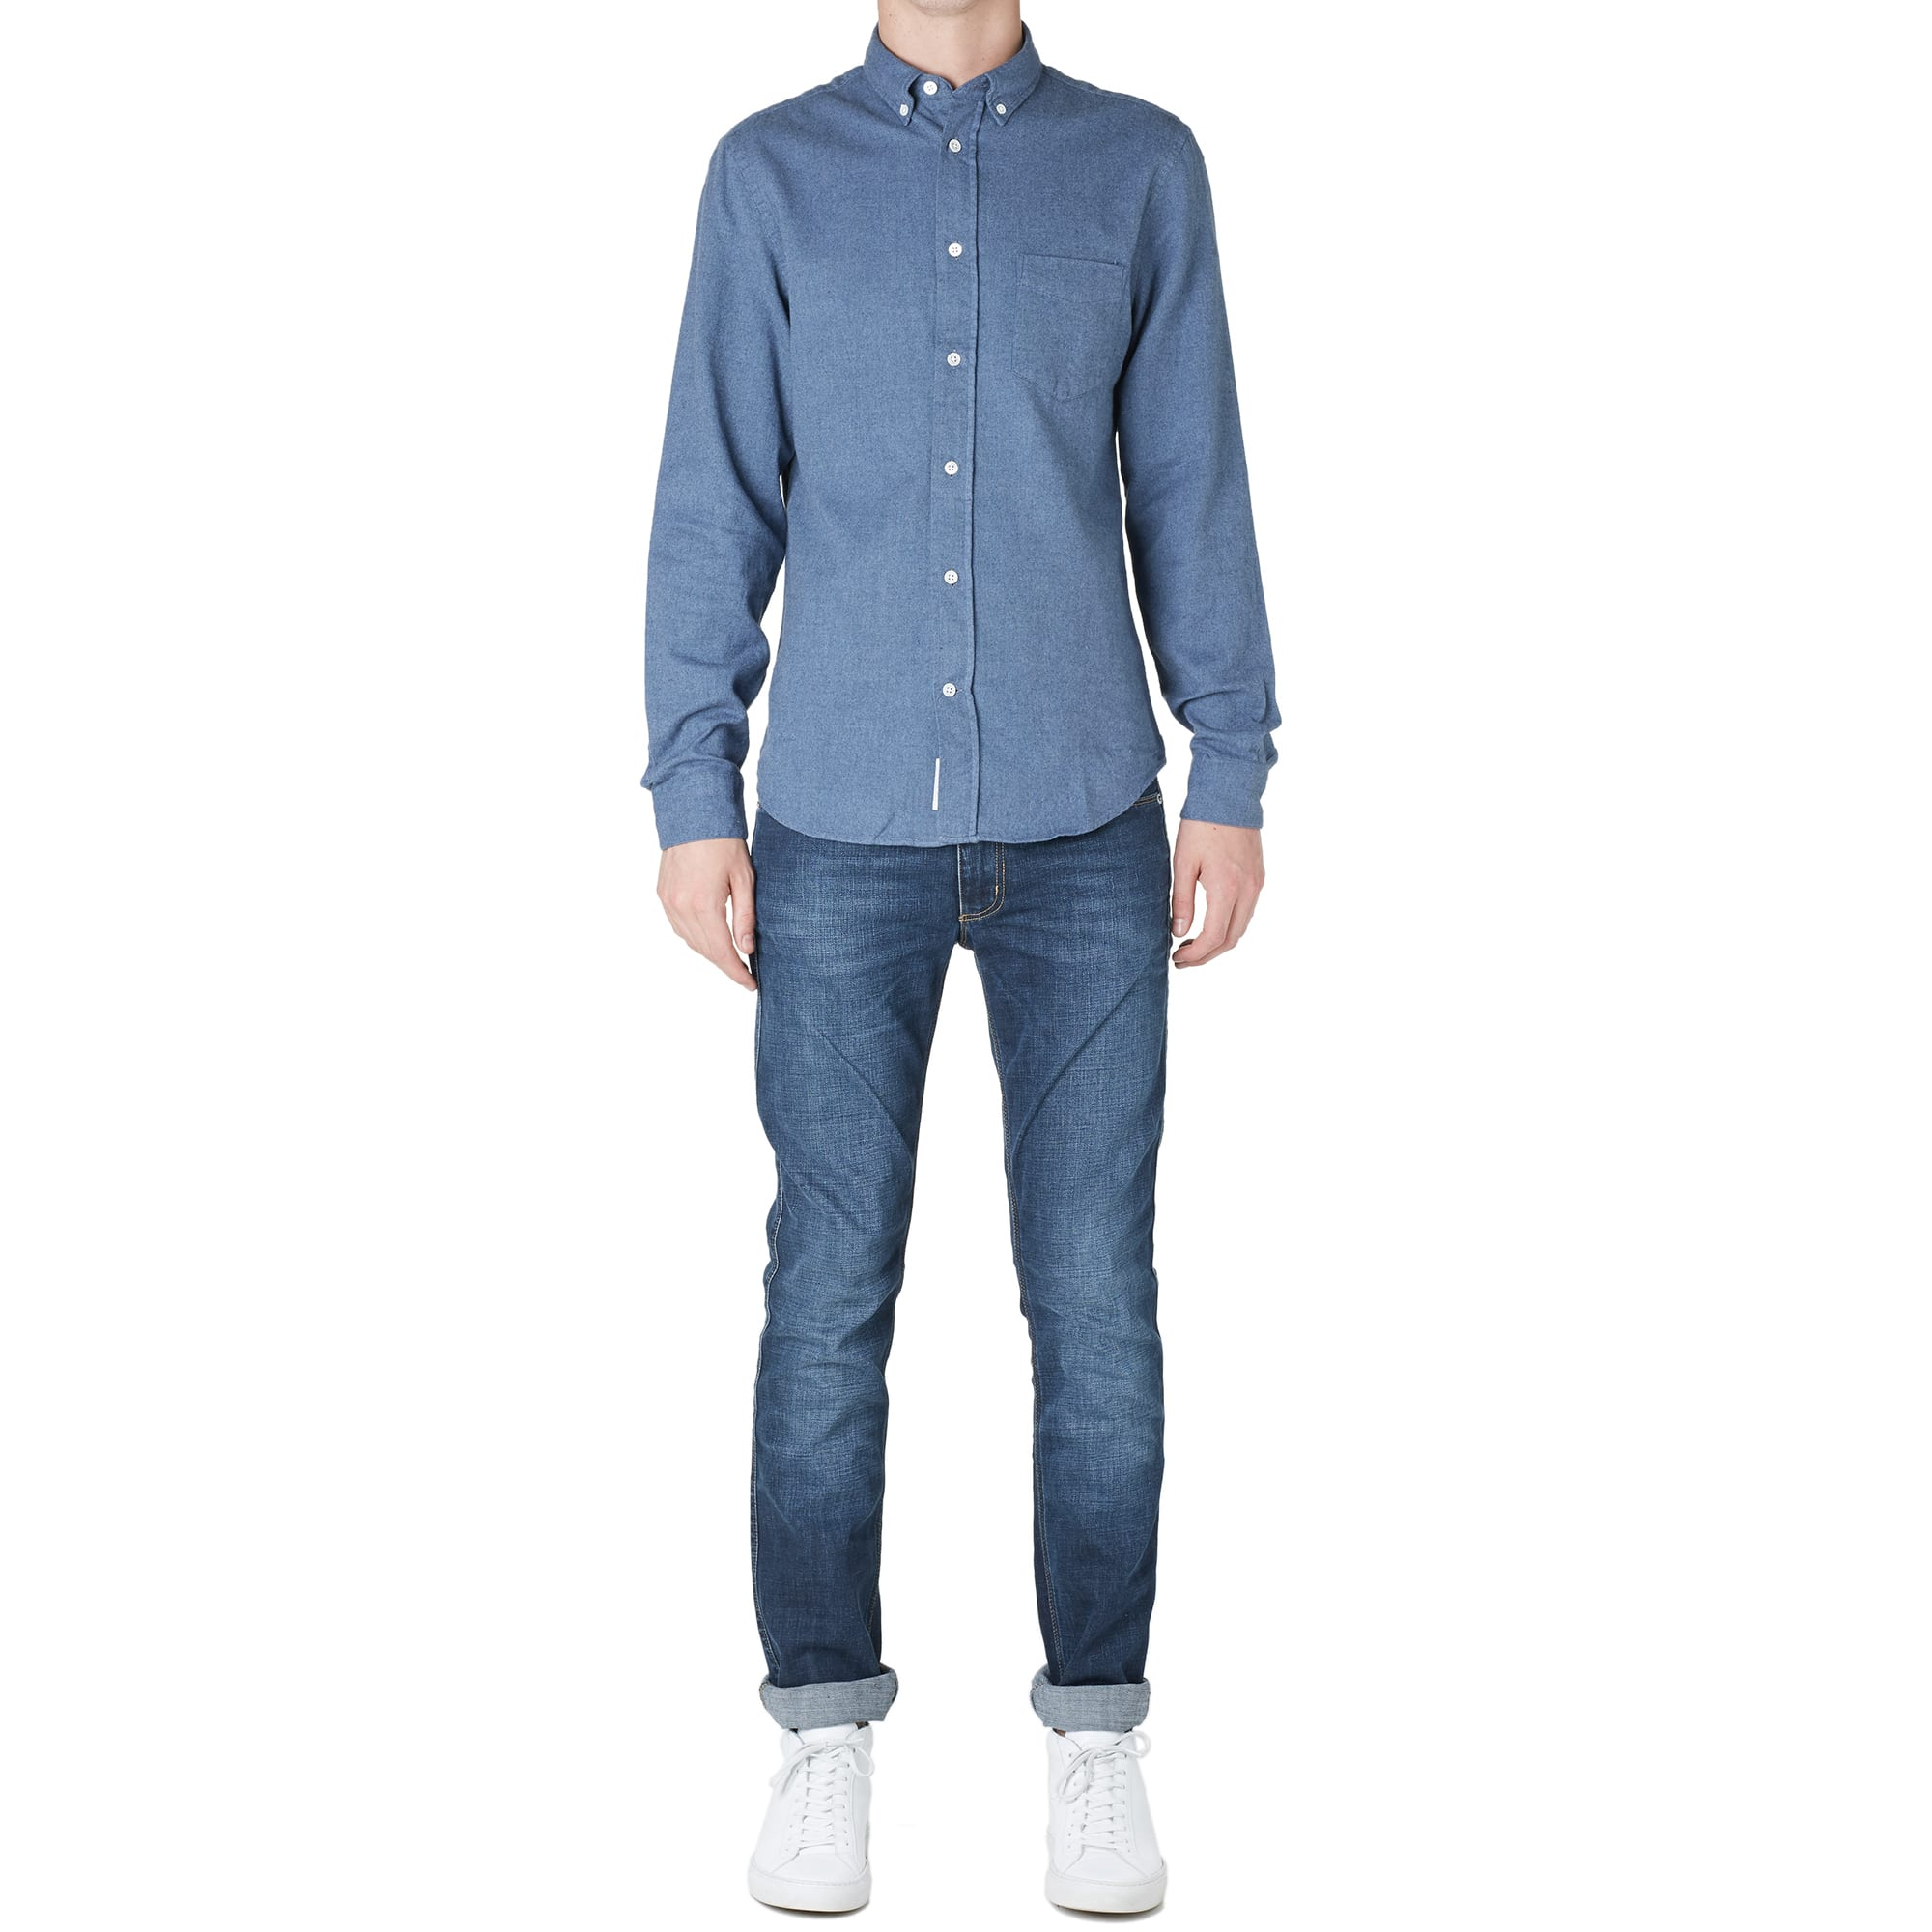 acne studios isherwood flannel shirt jeans blue